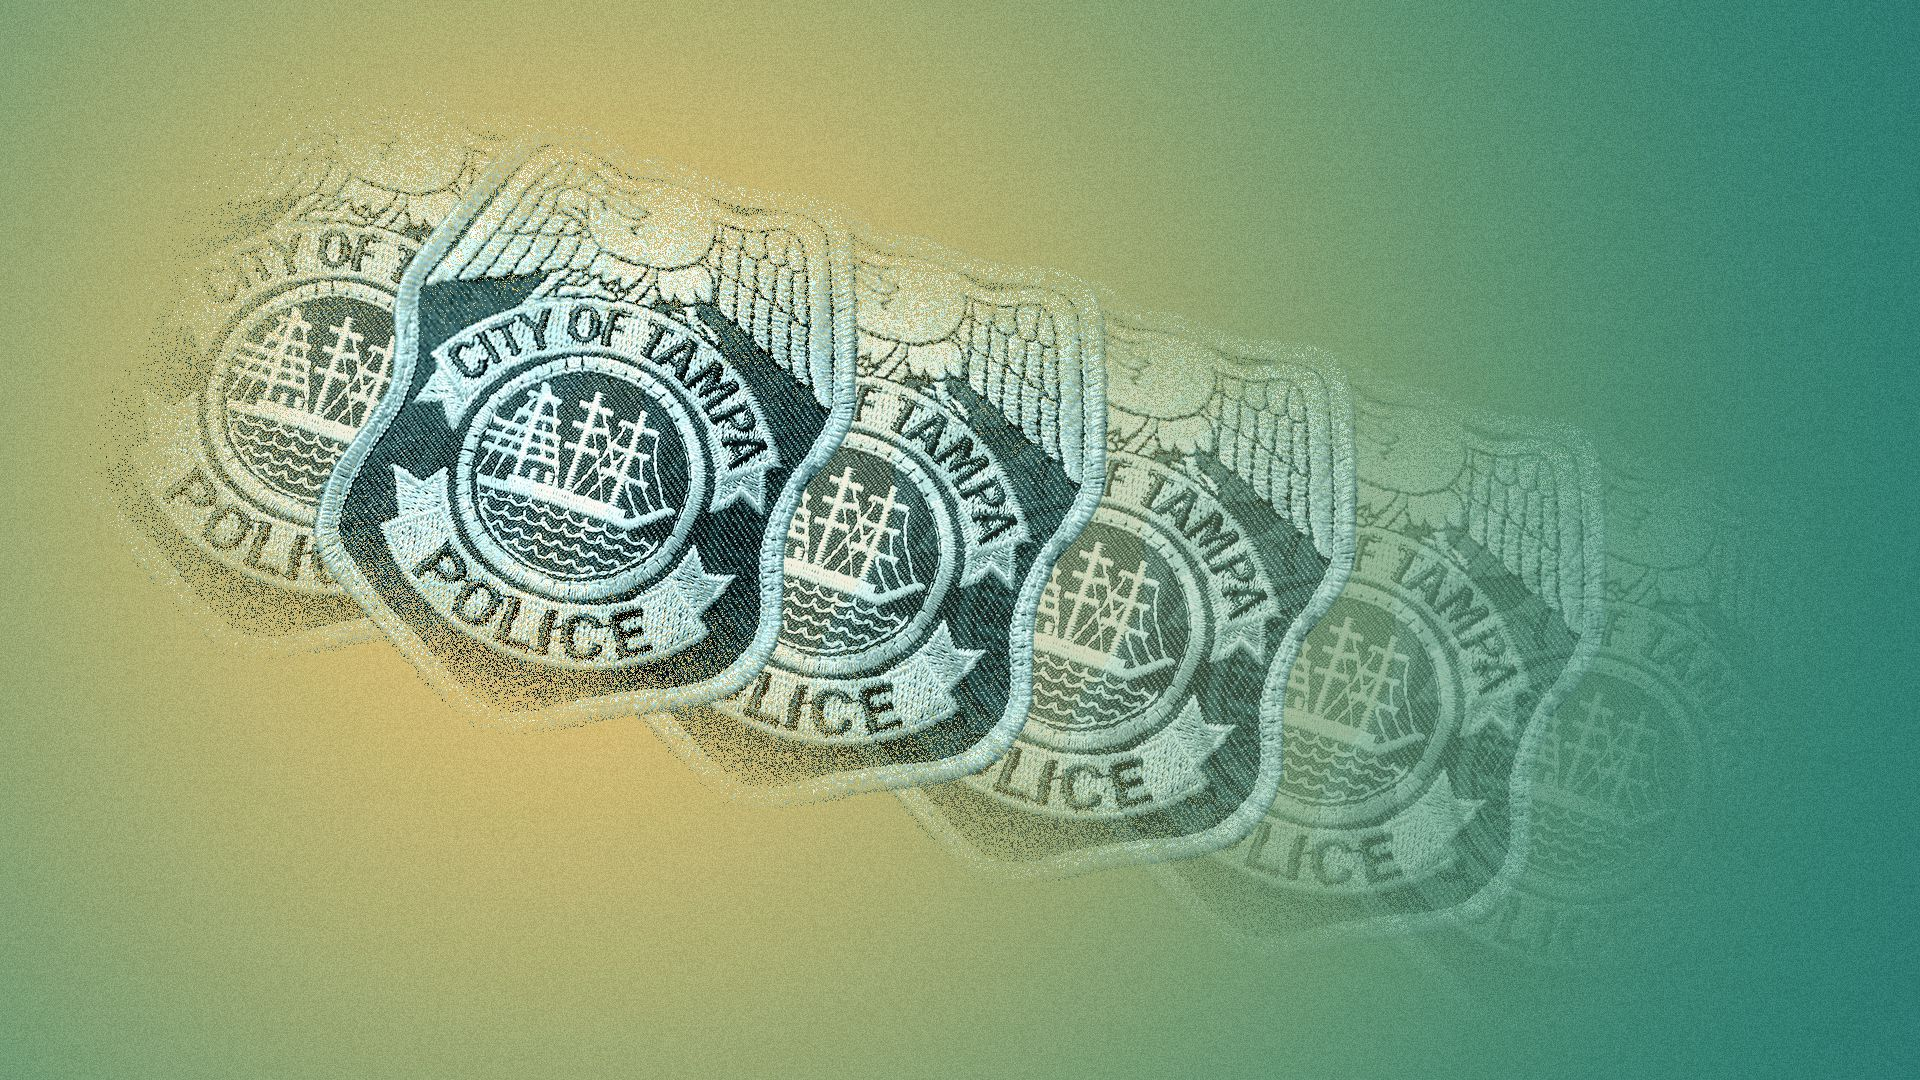 Photo illustration of a series of Tampa Bay Police patches, some of them faded.